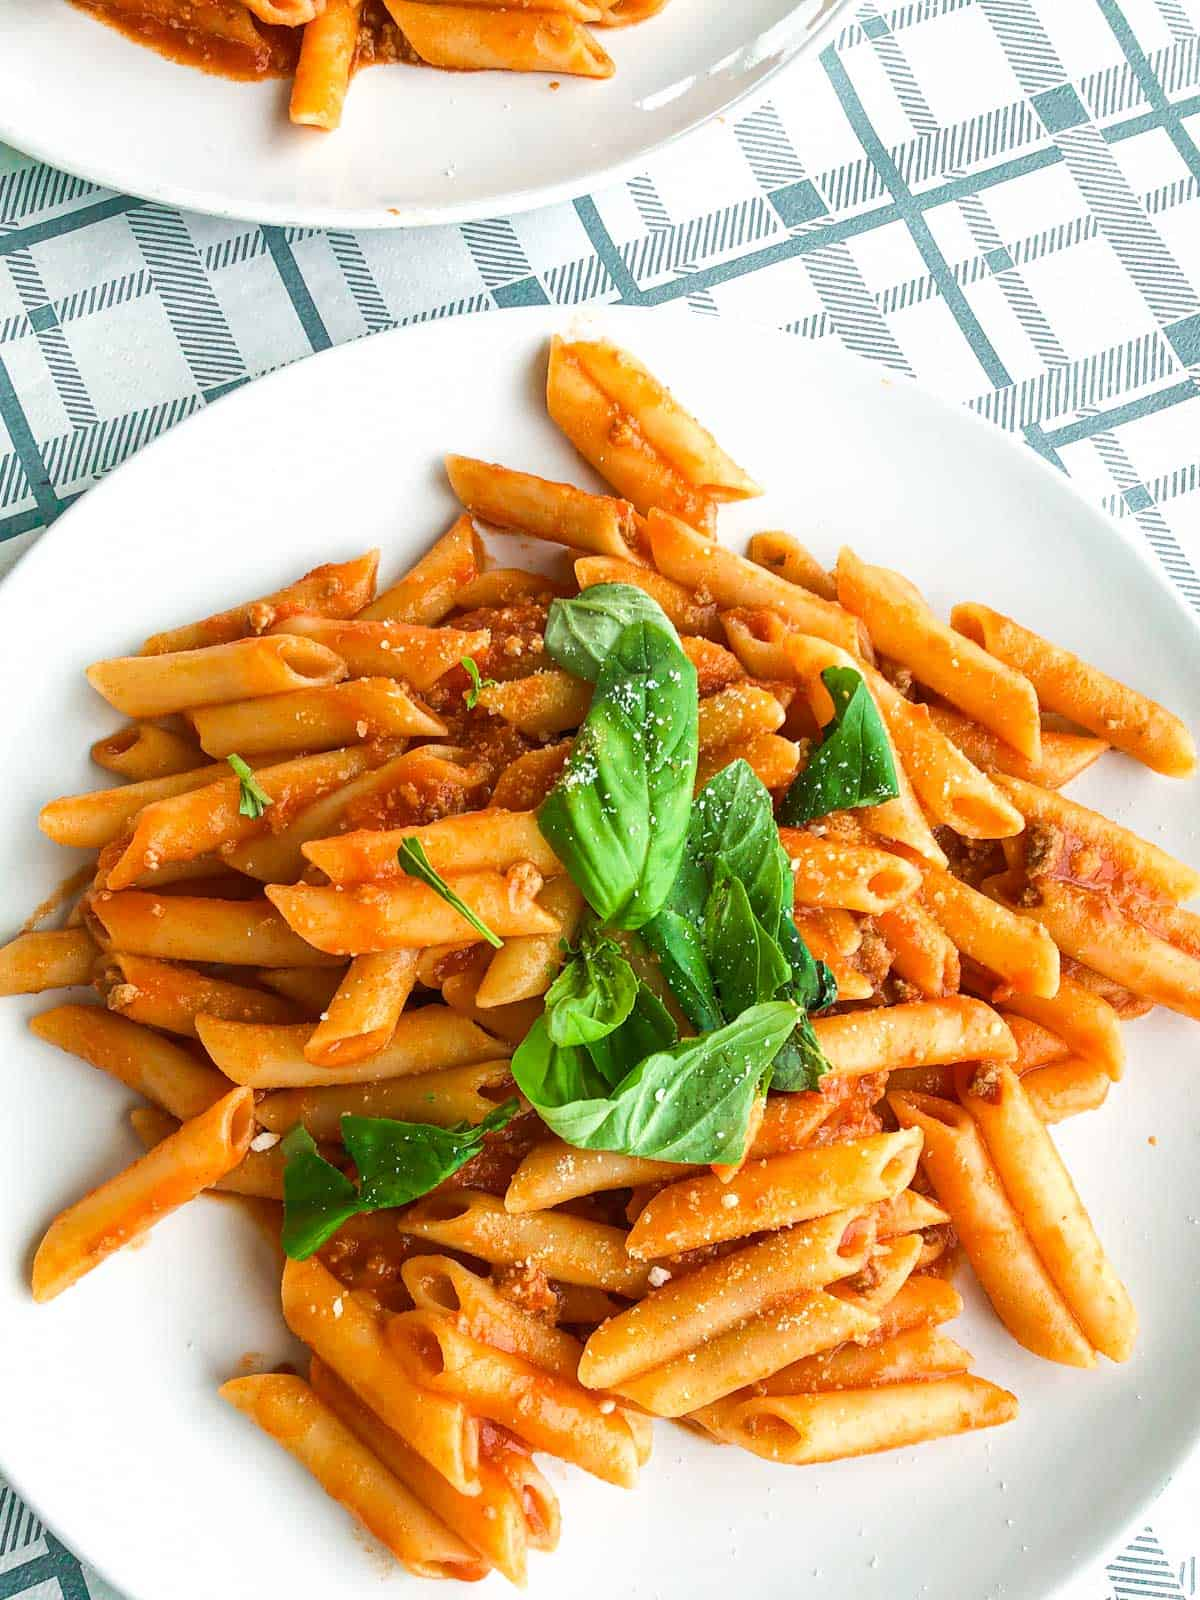 Penne ragu pasta on a white plate on a table with a checked blue and white tablecloth